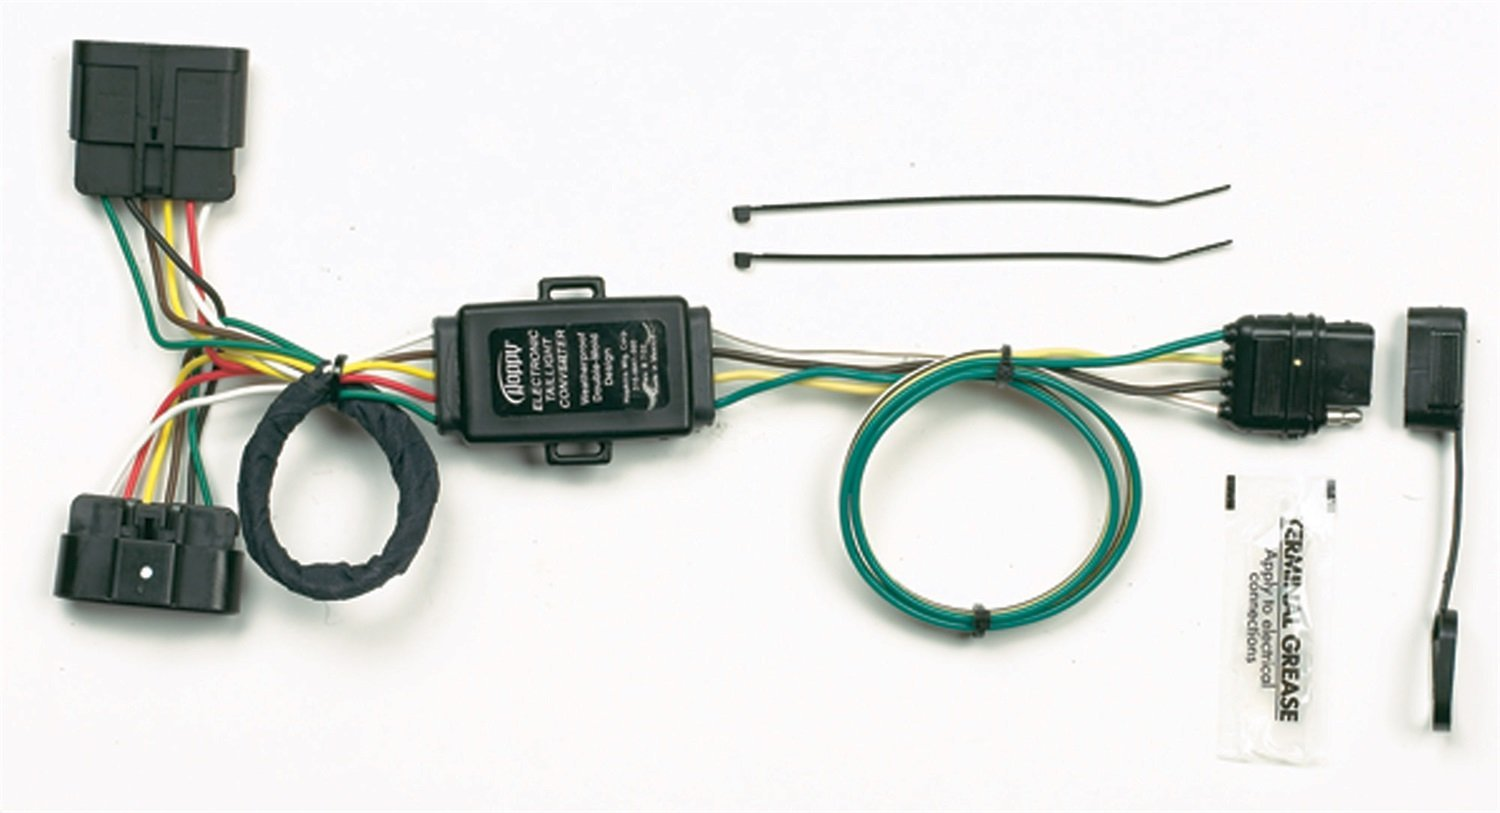 hight resolution of hopkins 41165 plug in simple vehicle wiring kit connector chevrolethopkins 41165 plug in simple vehicle